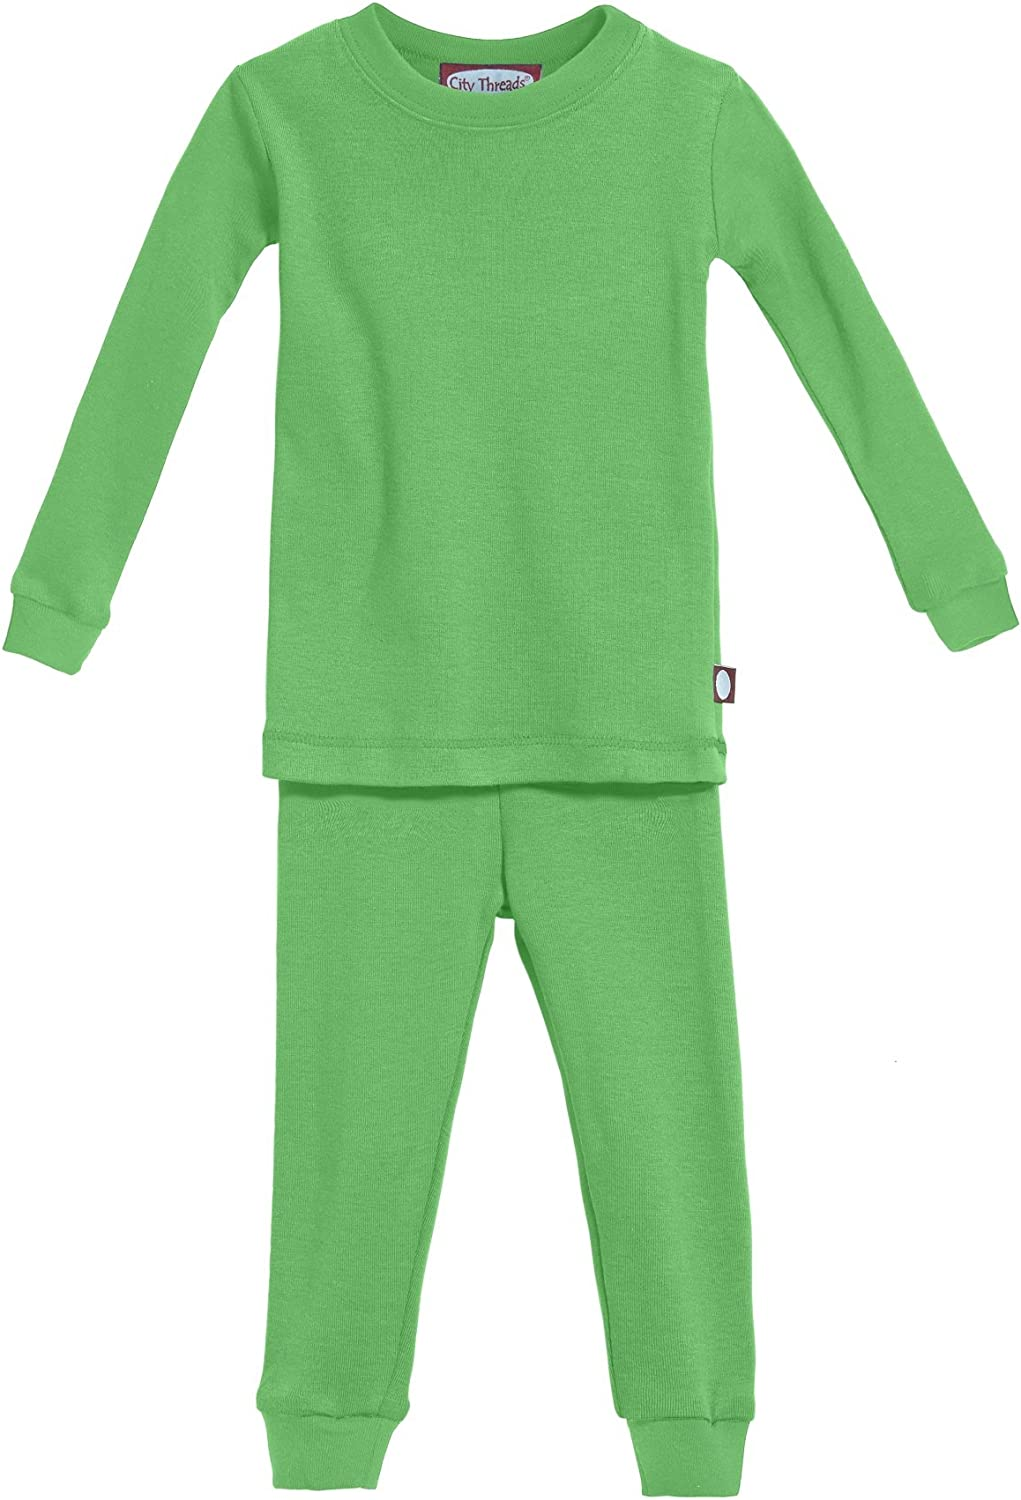 City Threads Boys' and Girls' Pajama Set PJs, Organic Cotton, Made in USA: Clothing